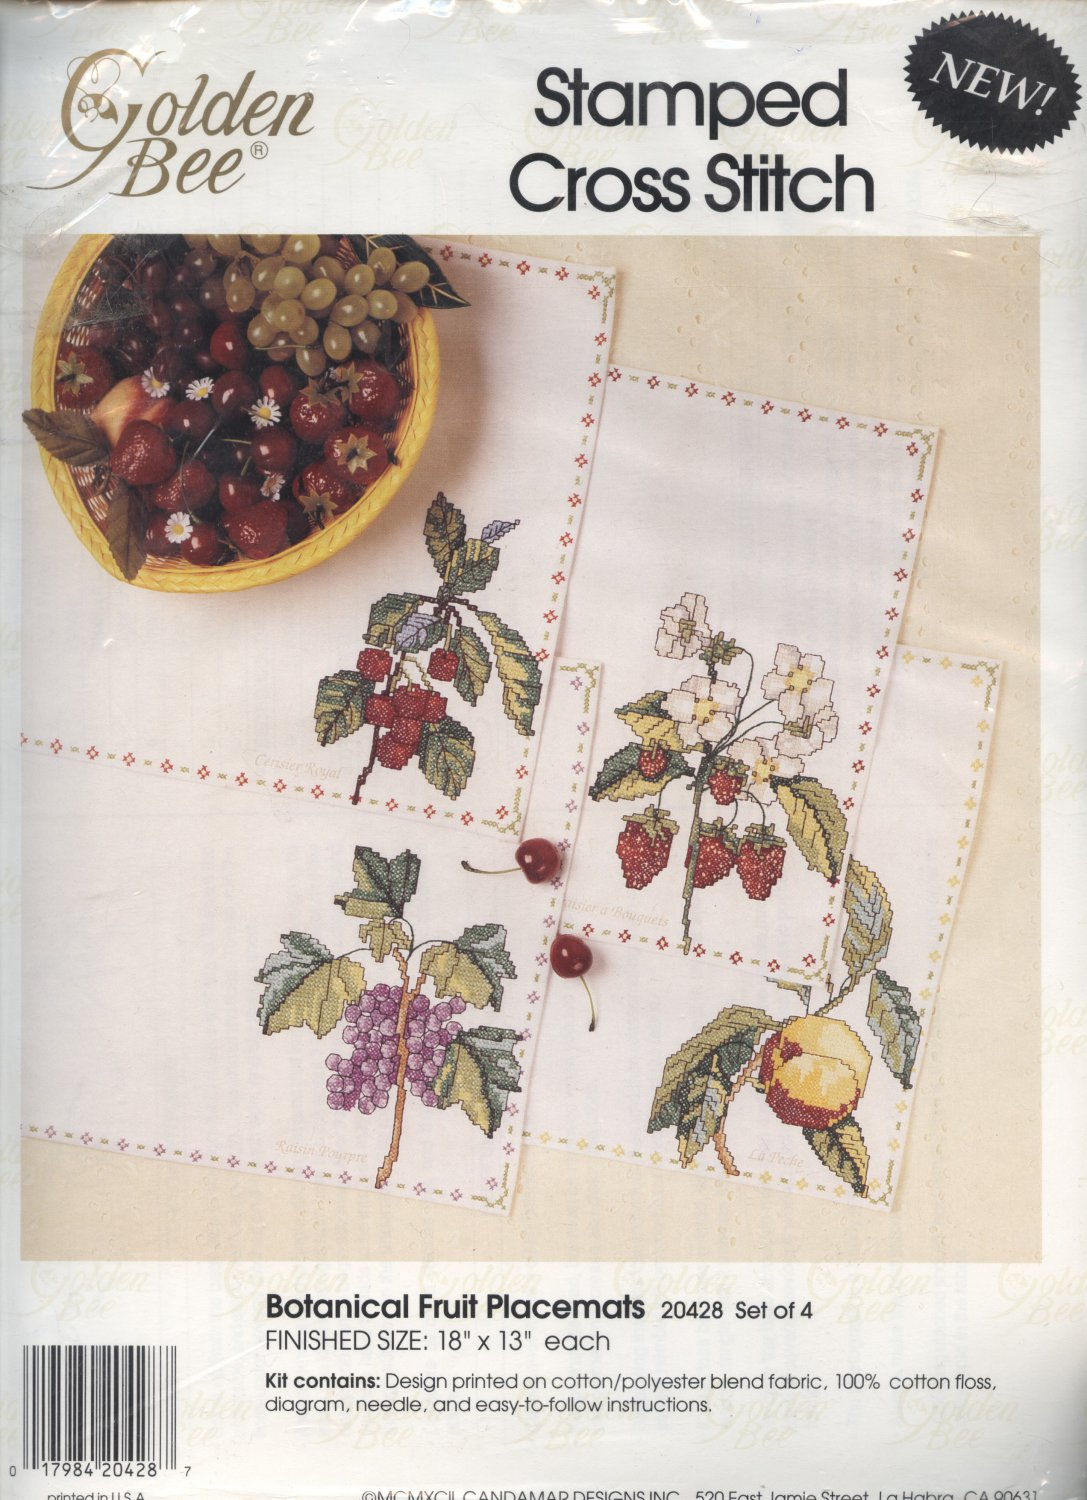 Golden Bee Stamped Cross Stitch Botanical Fruit Placemets Kit set of 4 NEW